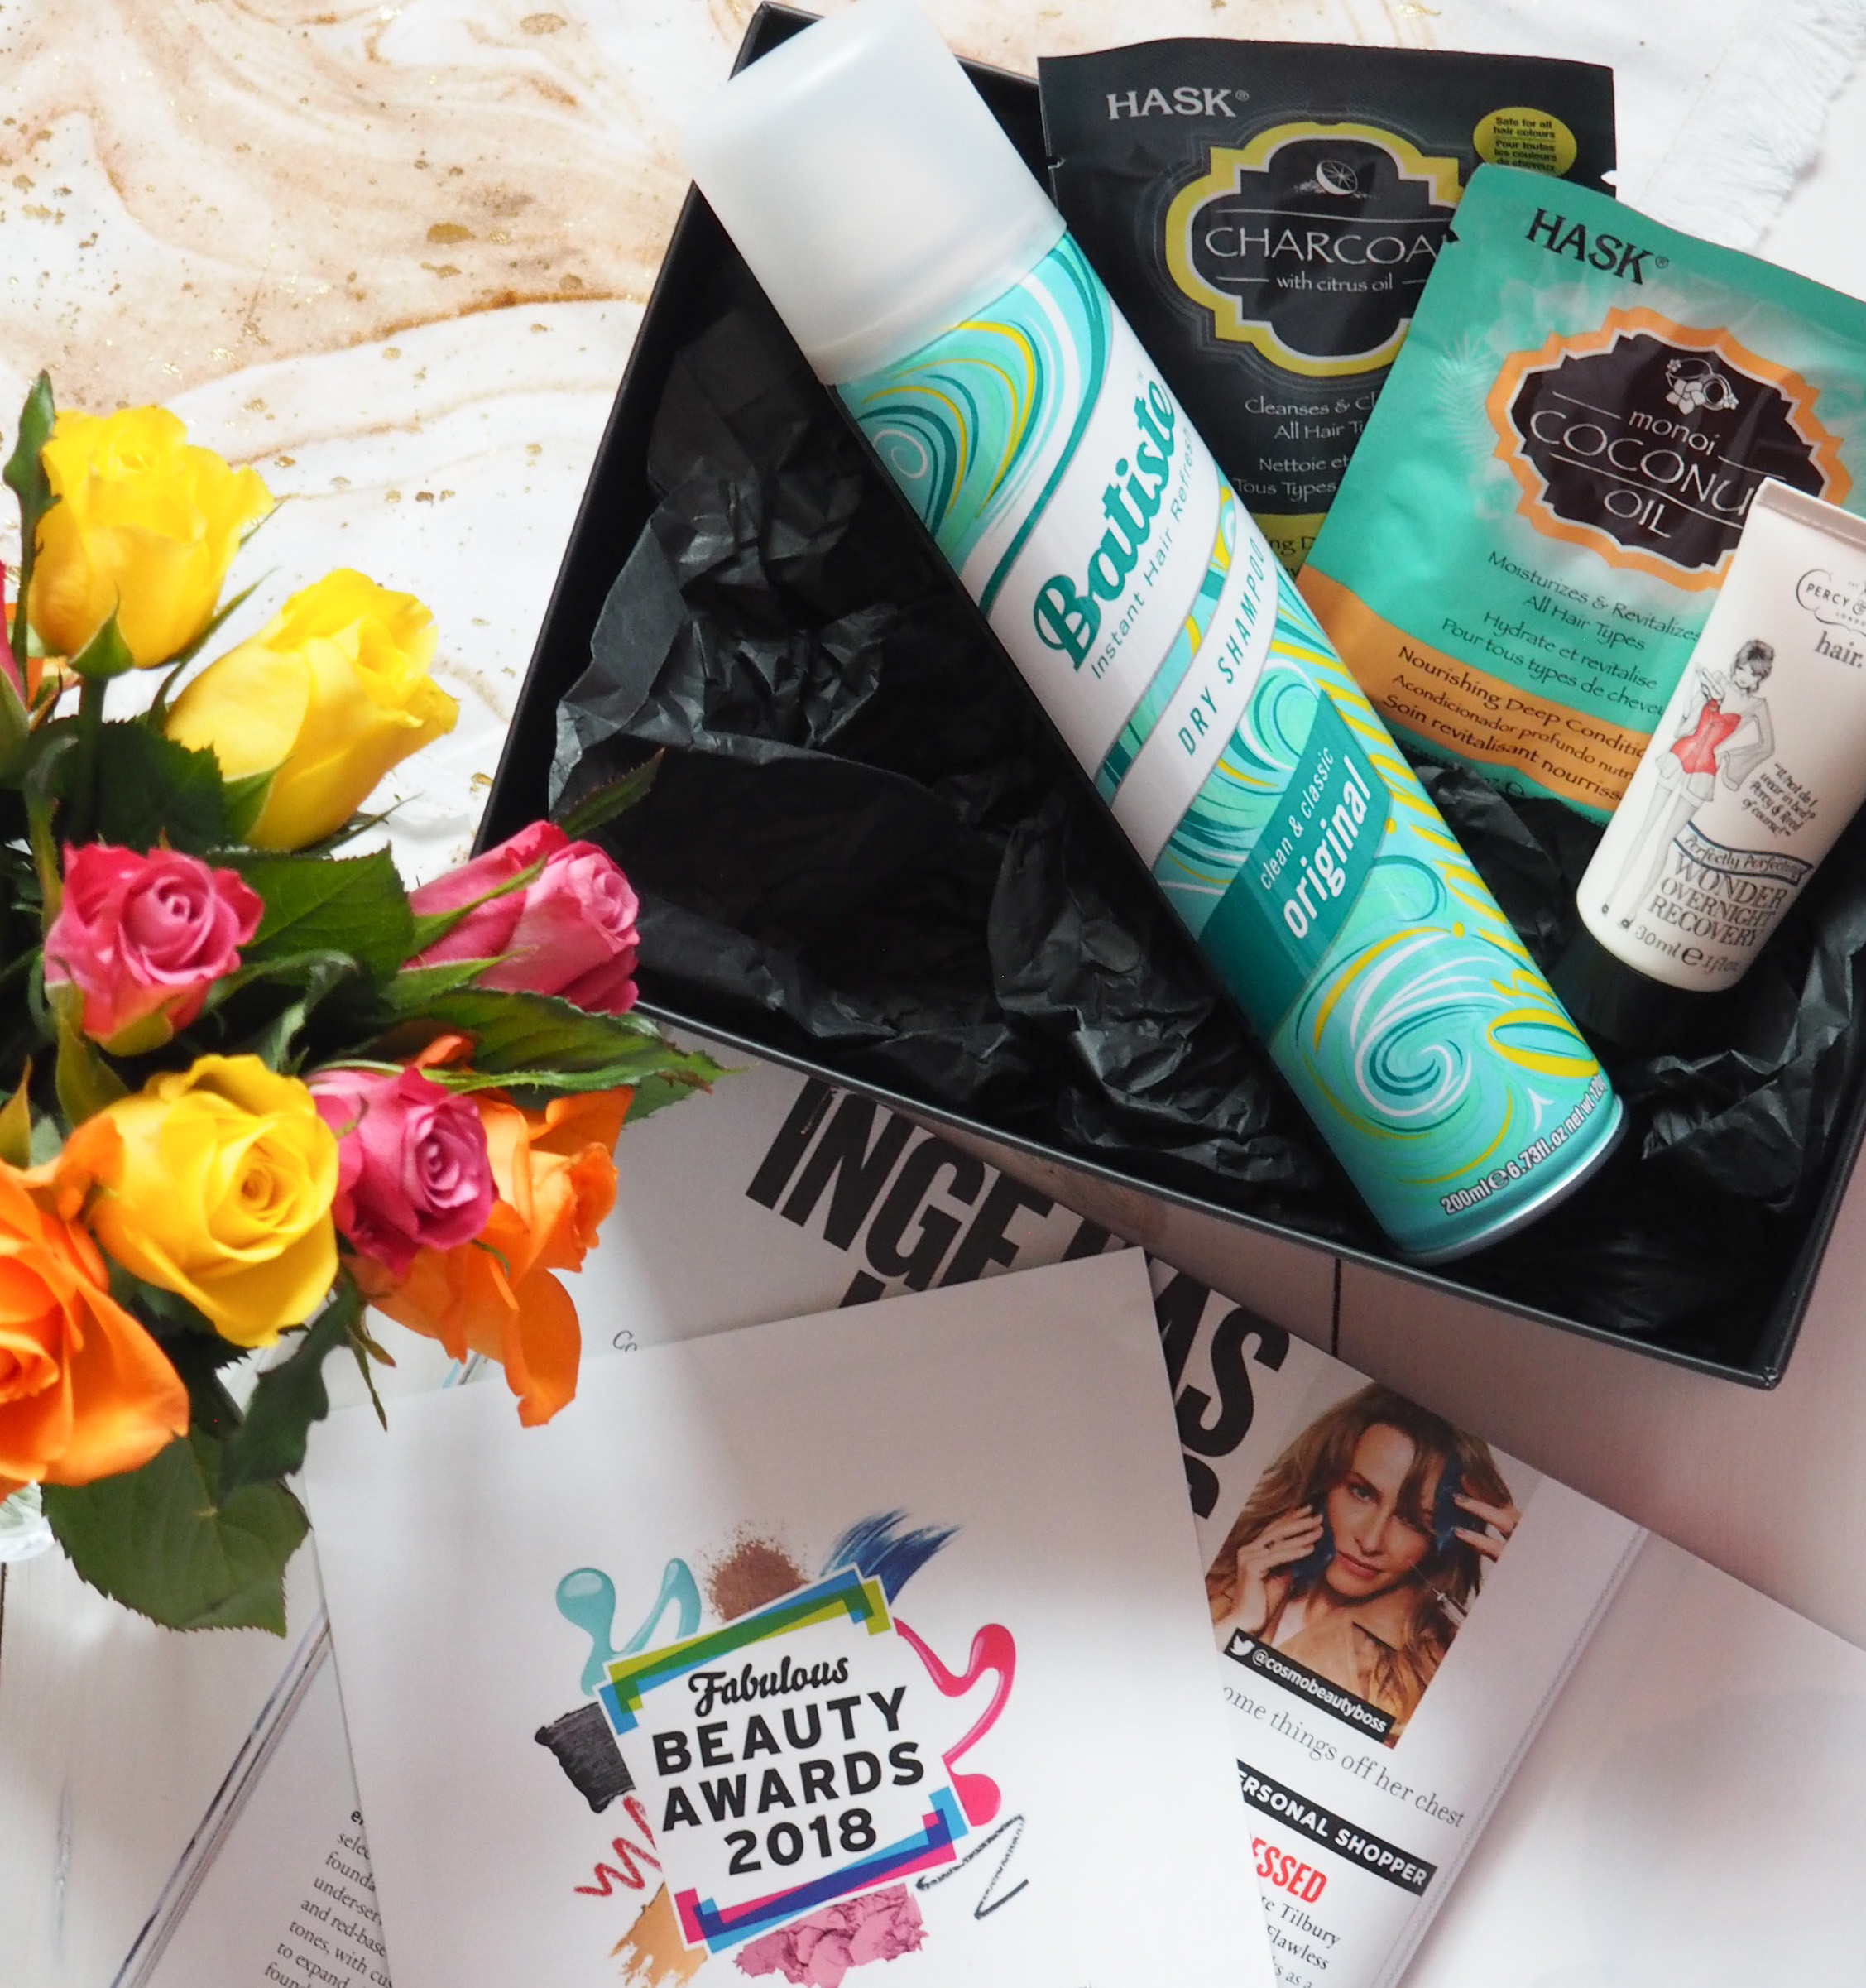 Fabulous Beauty Awards 2018 Beauty Box from Latest in Beauty 5.jpg